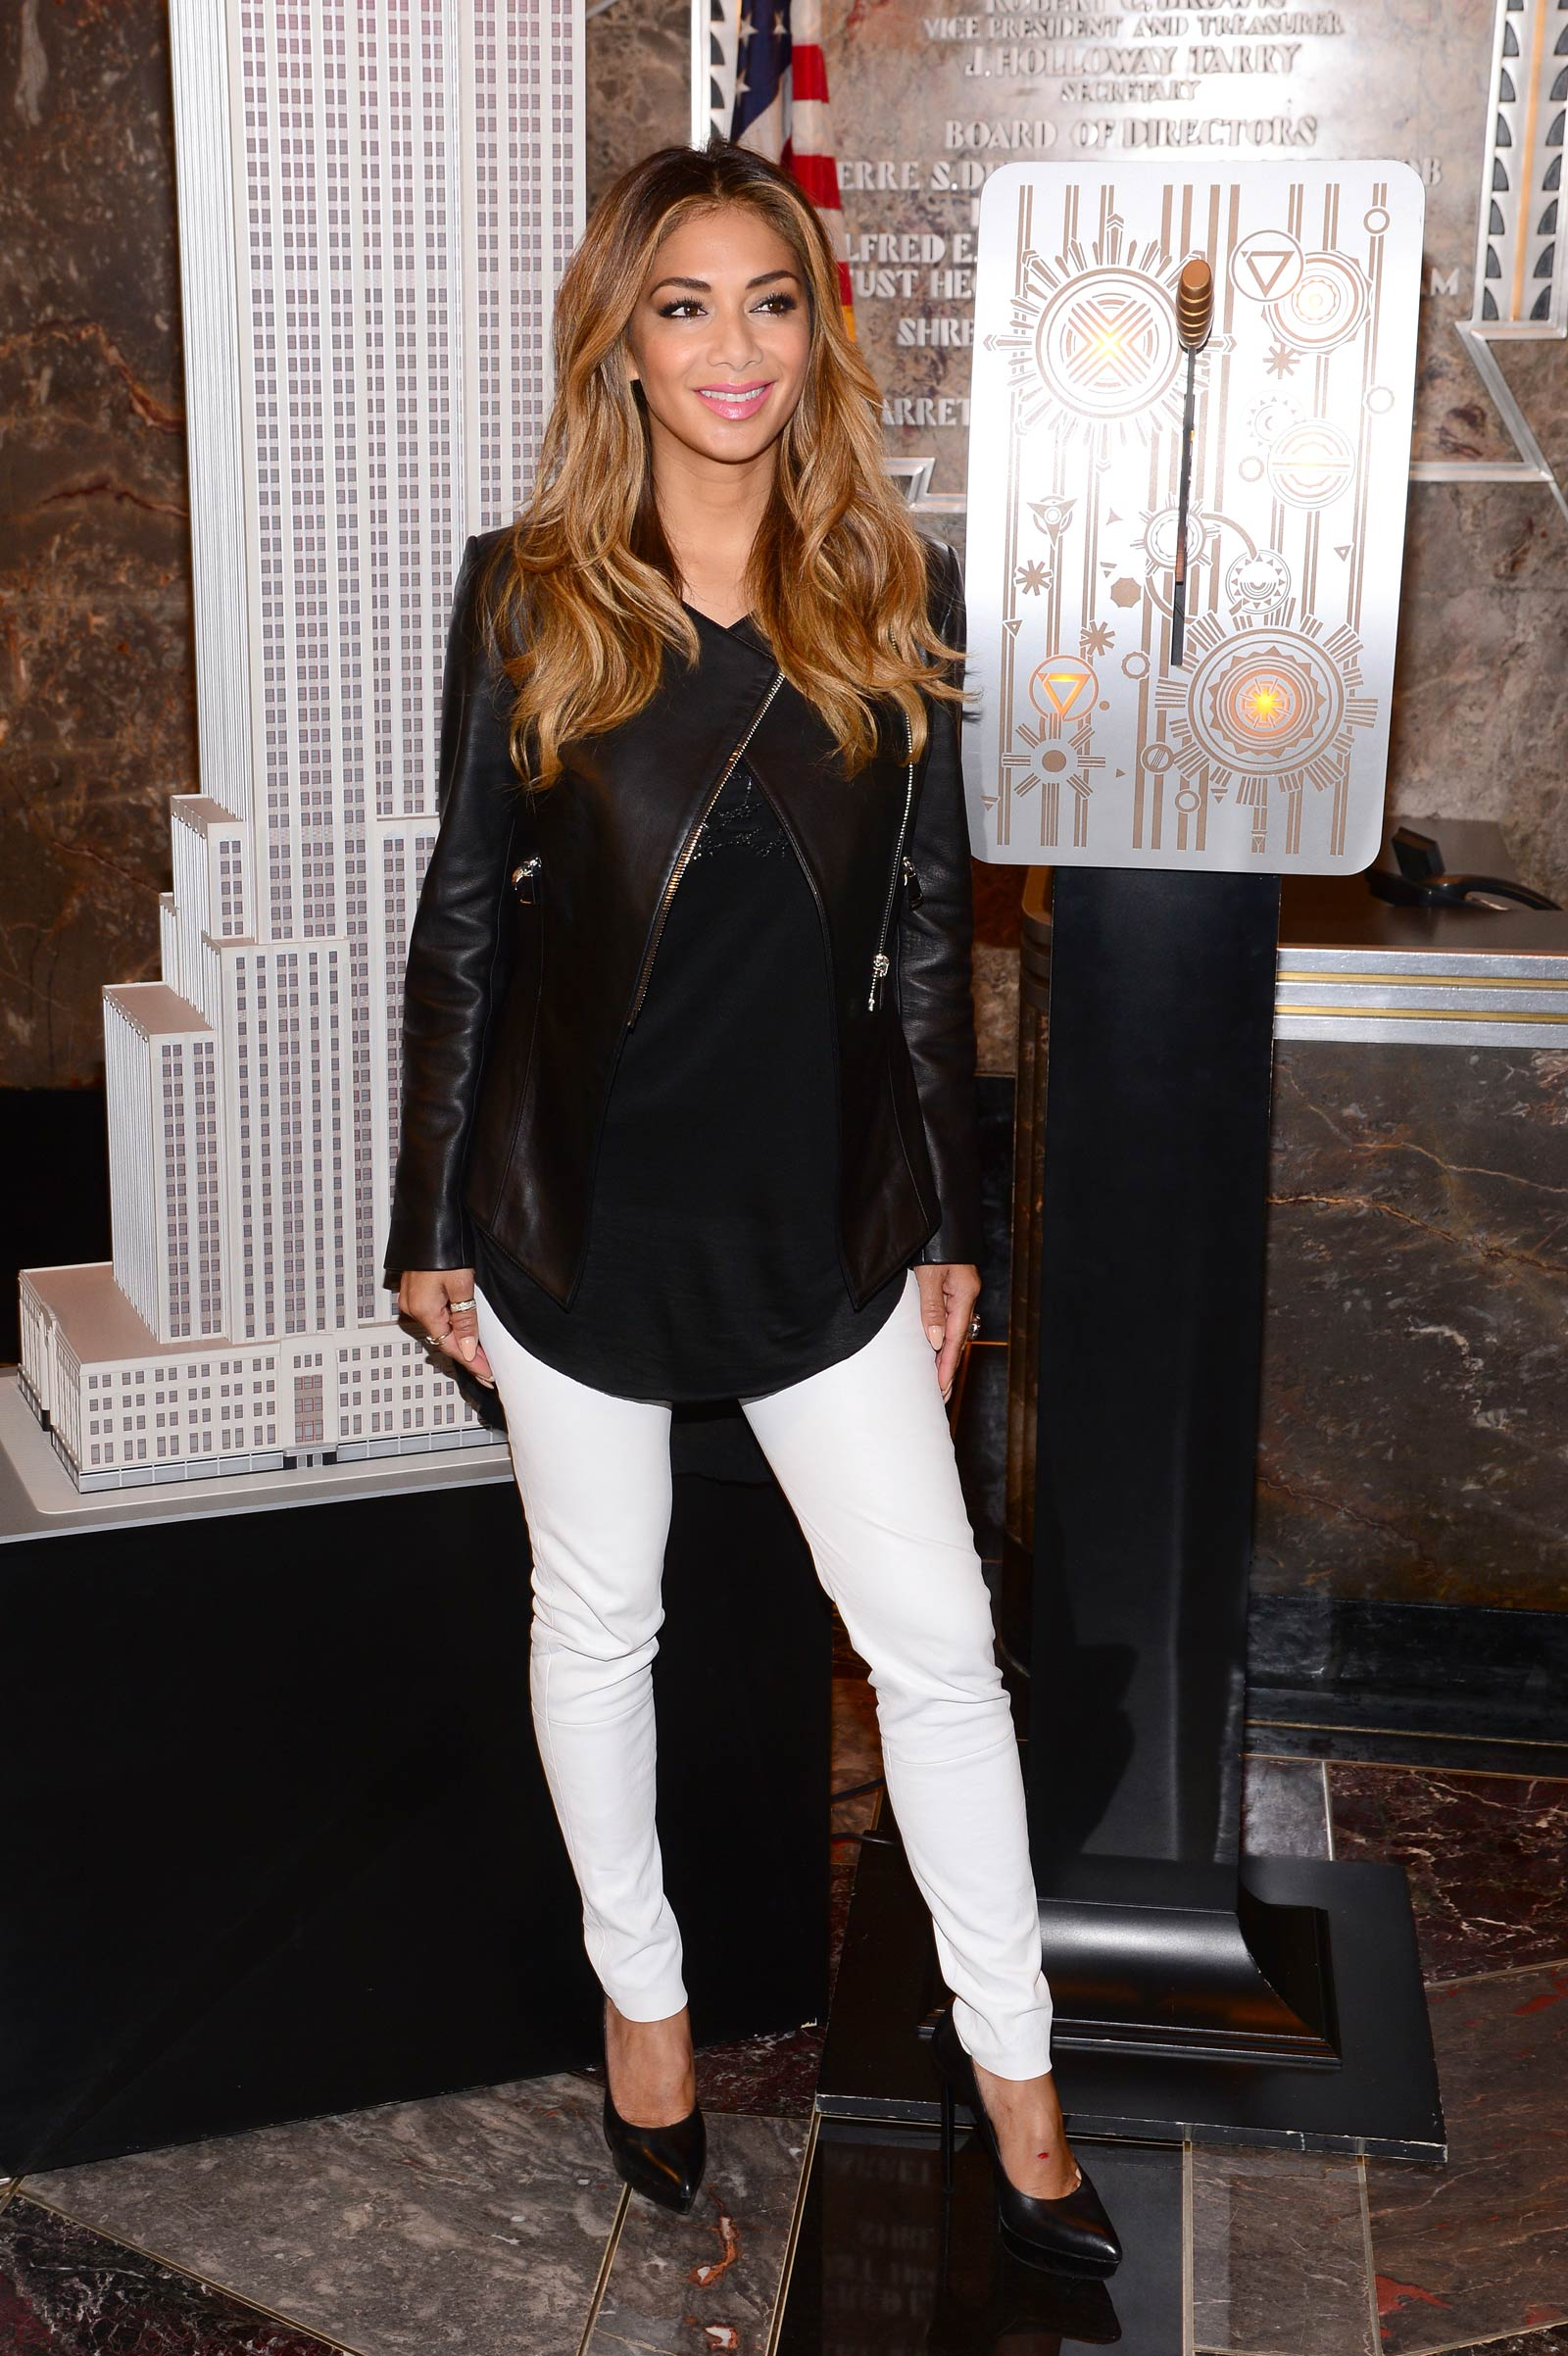 Nicole Scherzinger at Empire State Building celebrating Red Nose Day